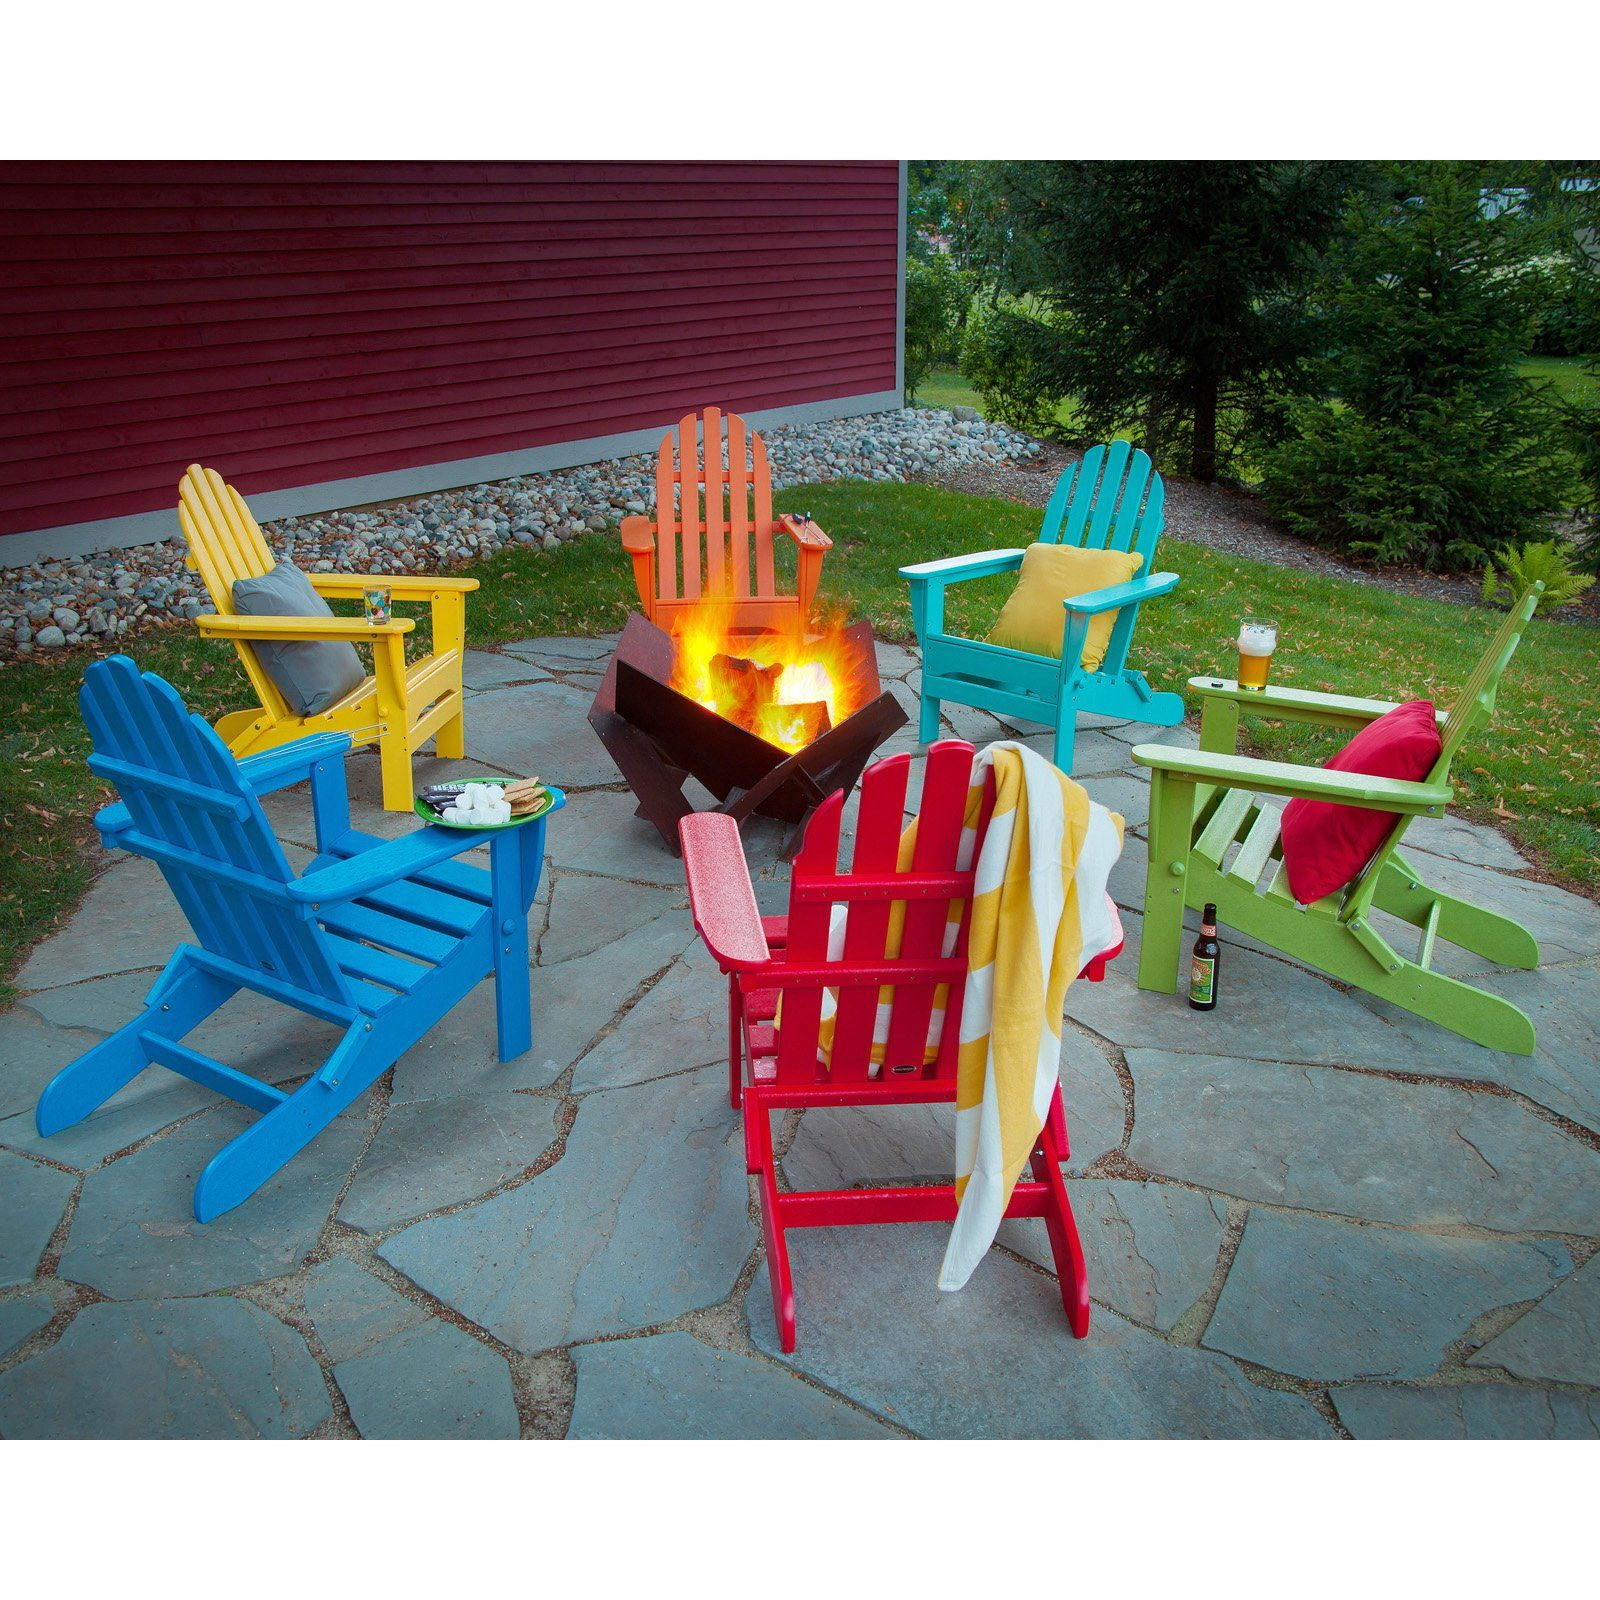 POLYWOOD® Recycled Plastic Classic Foldable Adirondack Chair   $269 @